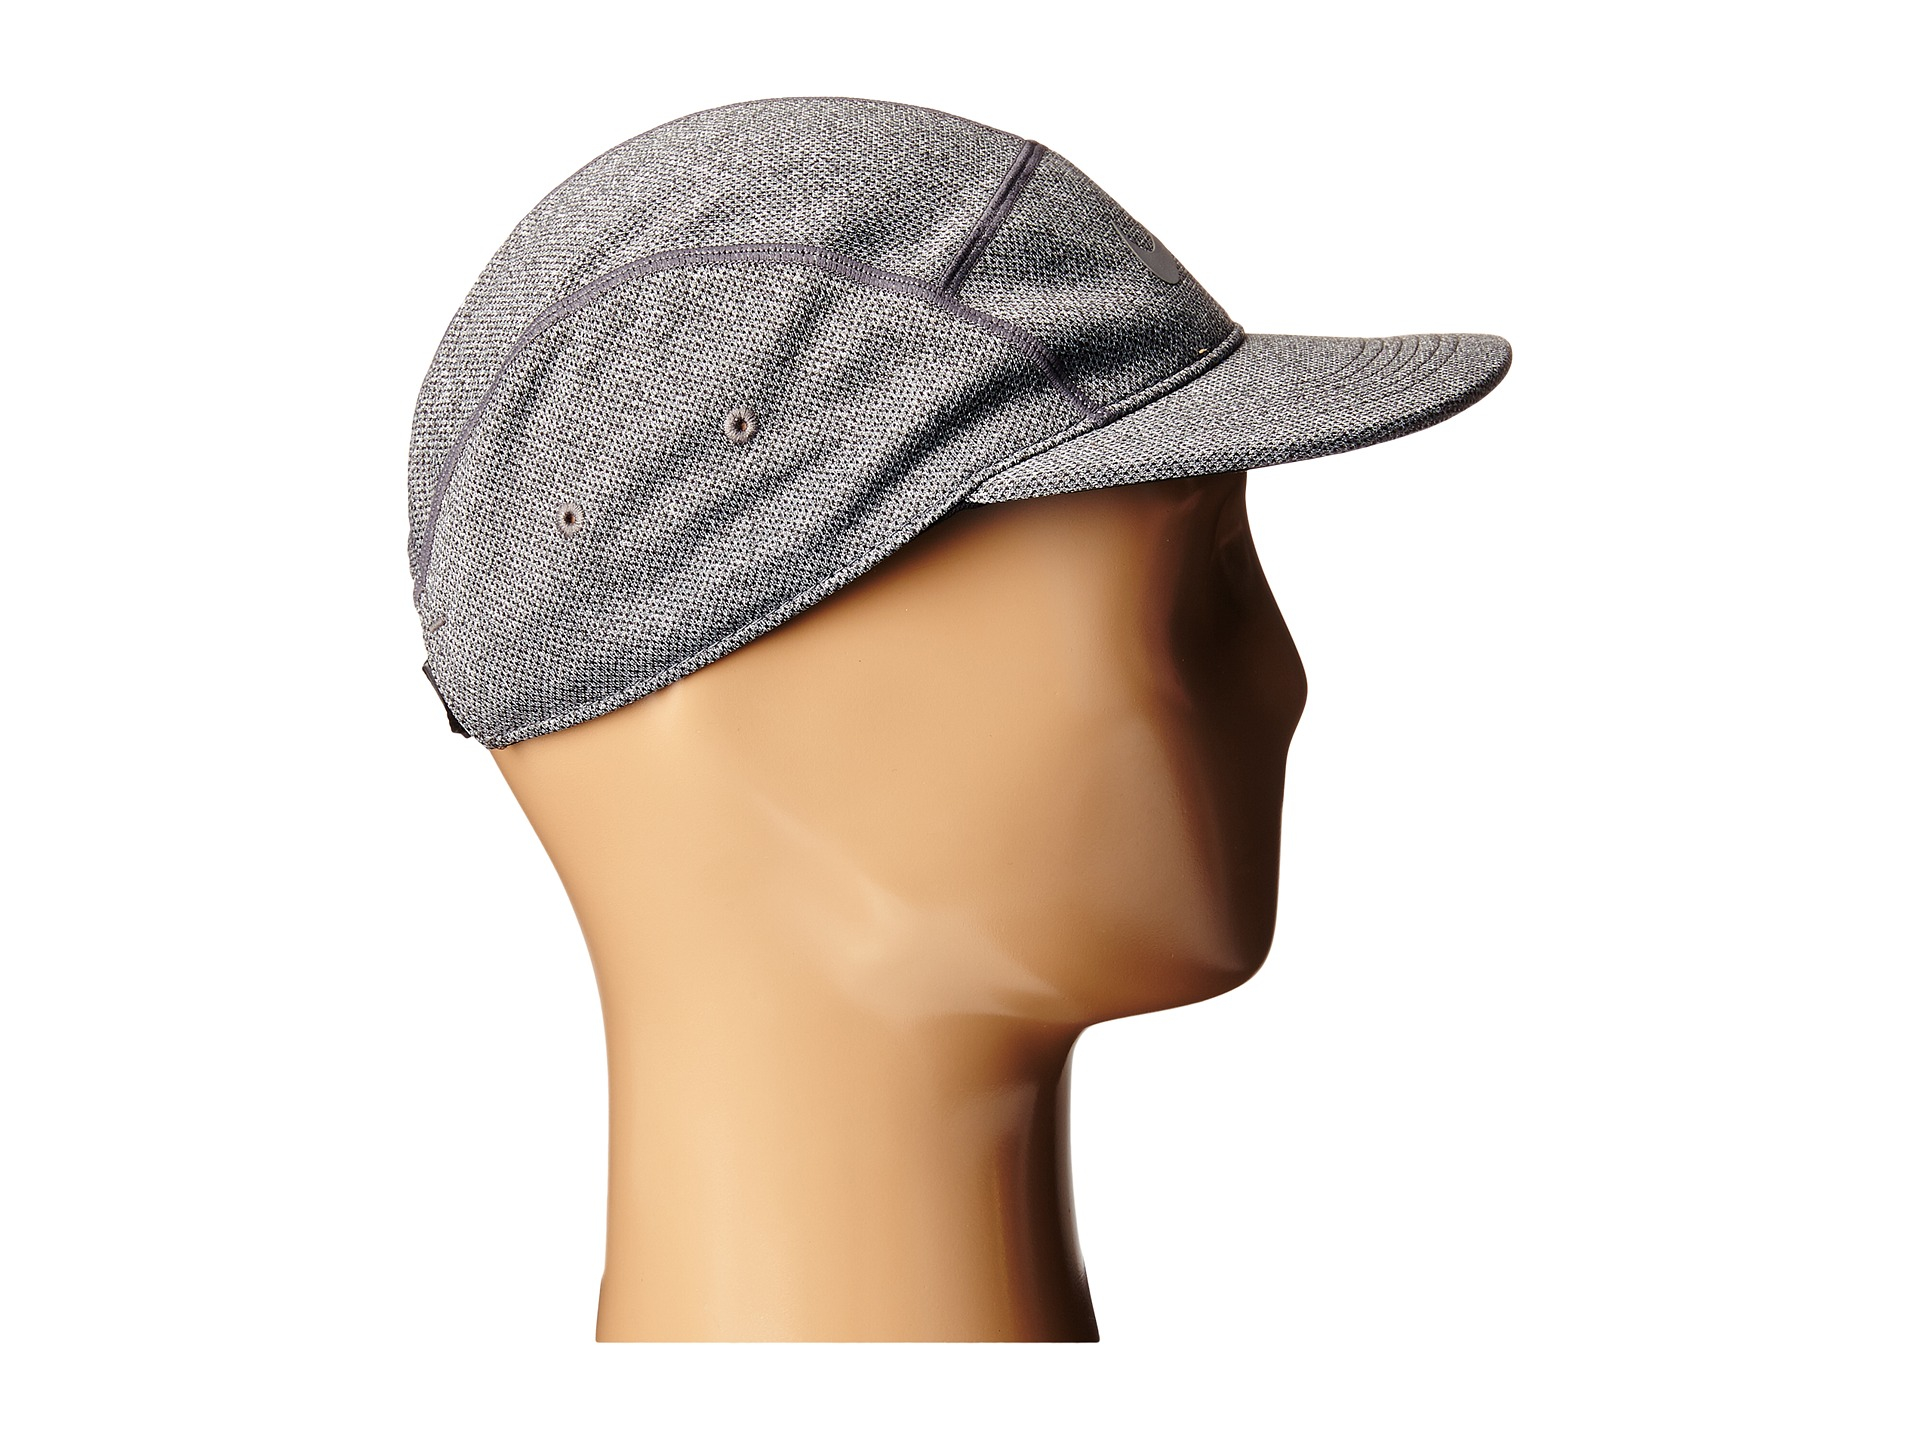 Nike Run Dri-fit Knit Aw84 Hat in Metallic for Men Lyst